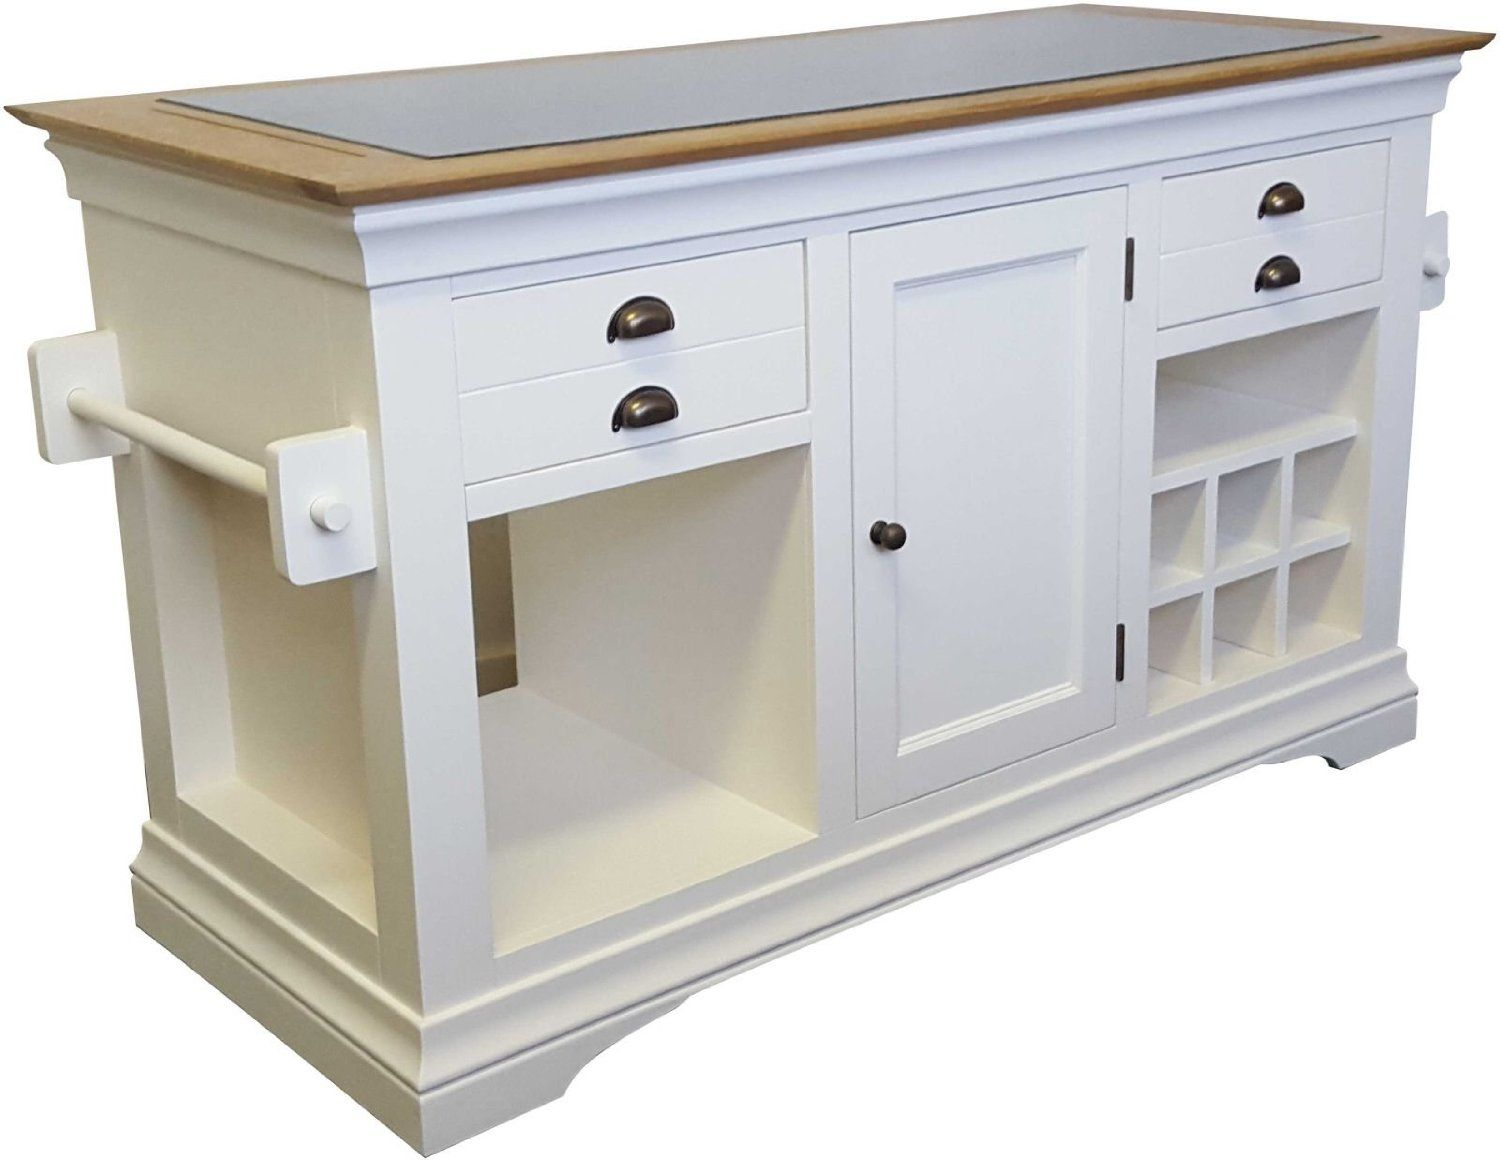 Granite Top Kitchen Island Table Dijon Cream Painted Furniture Large Granite Top Kitchen Island